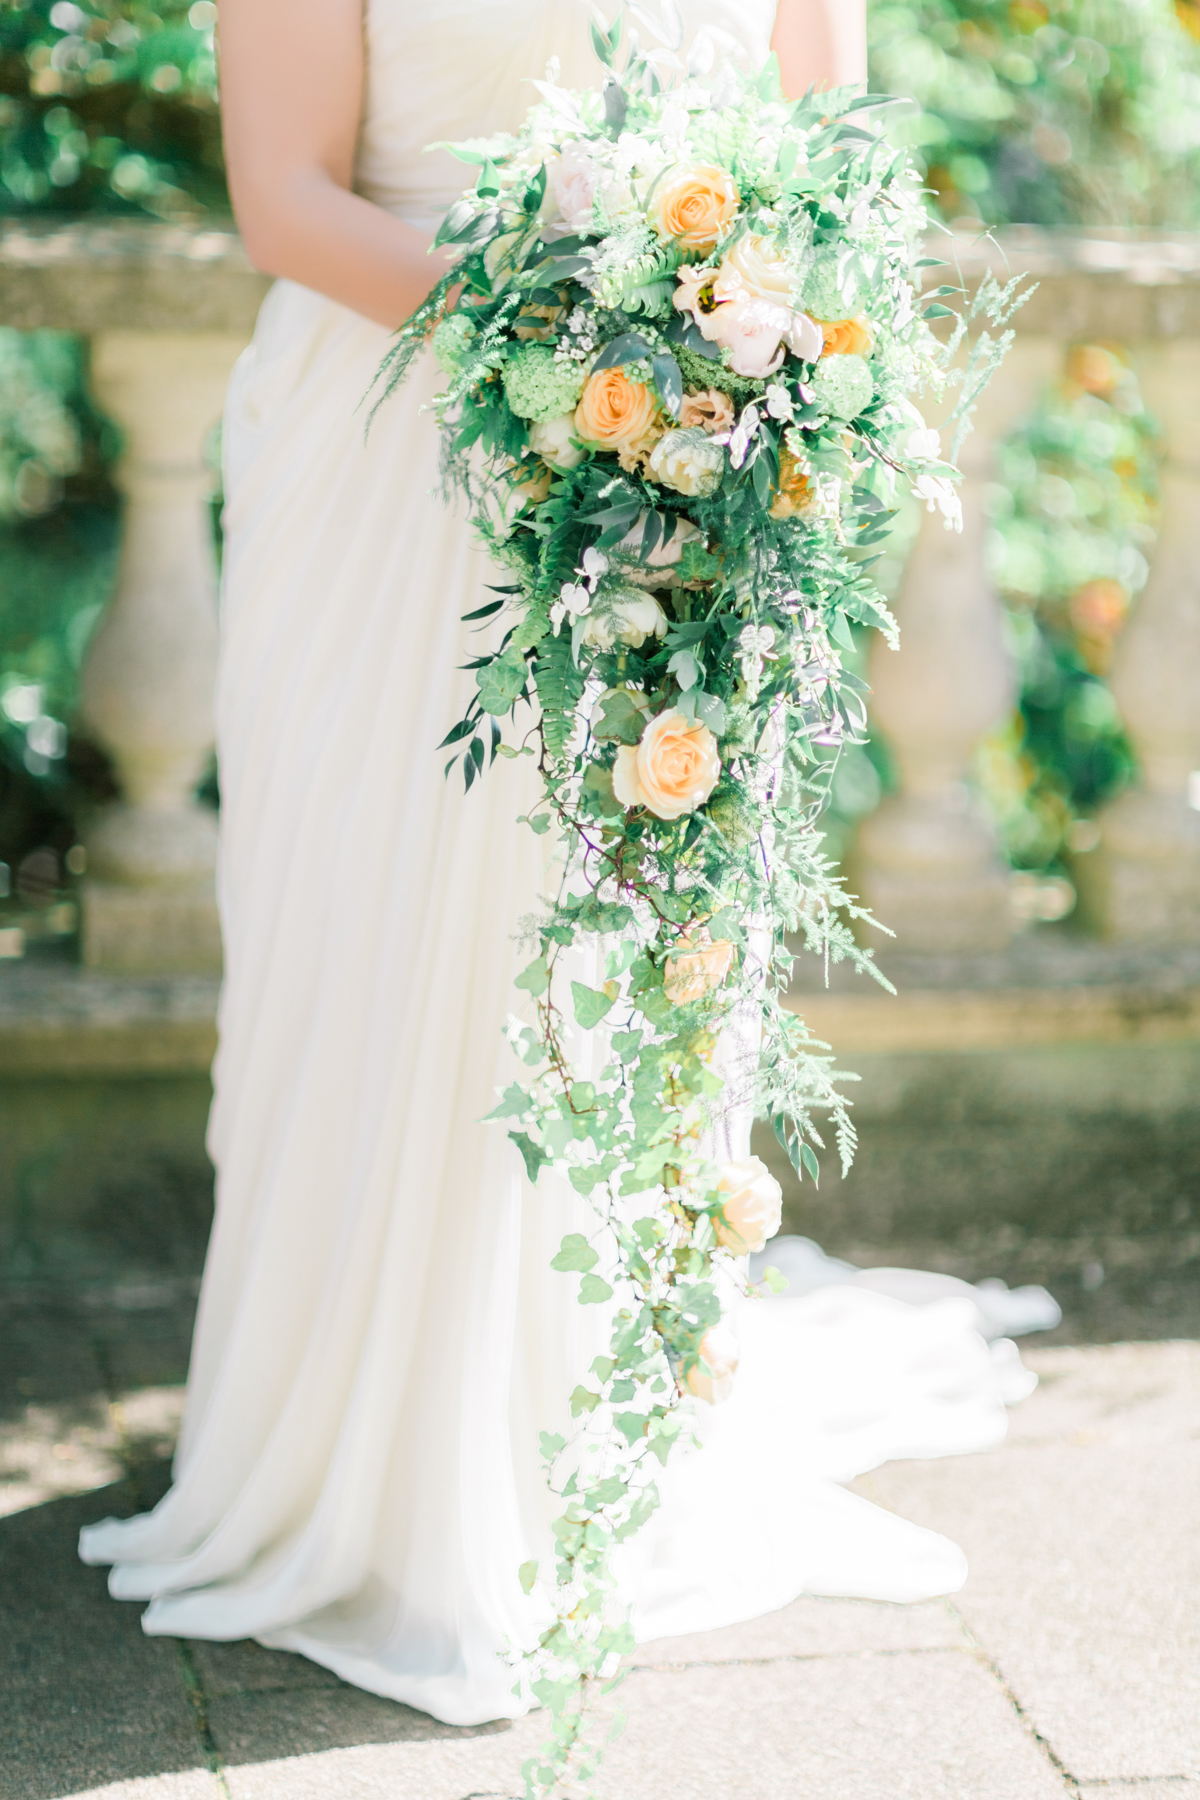 The right bouquet can really accentuate a look and add drama. This gorgeous trailing number by Amie Bone creates length and height.